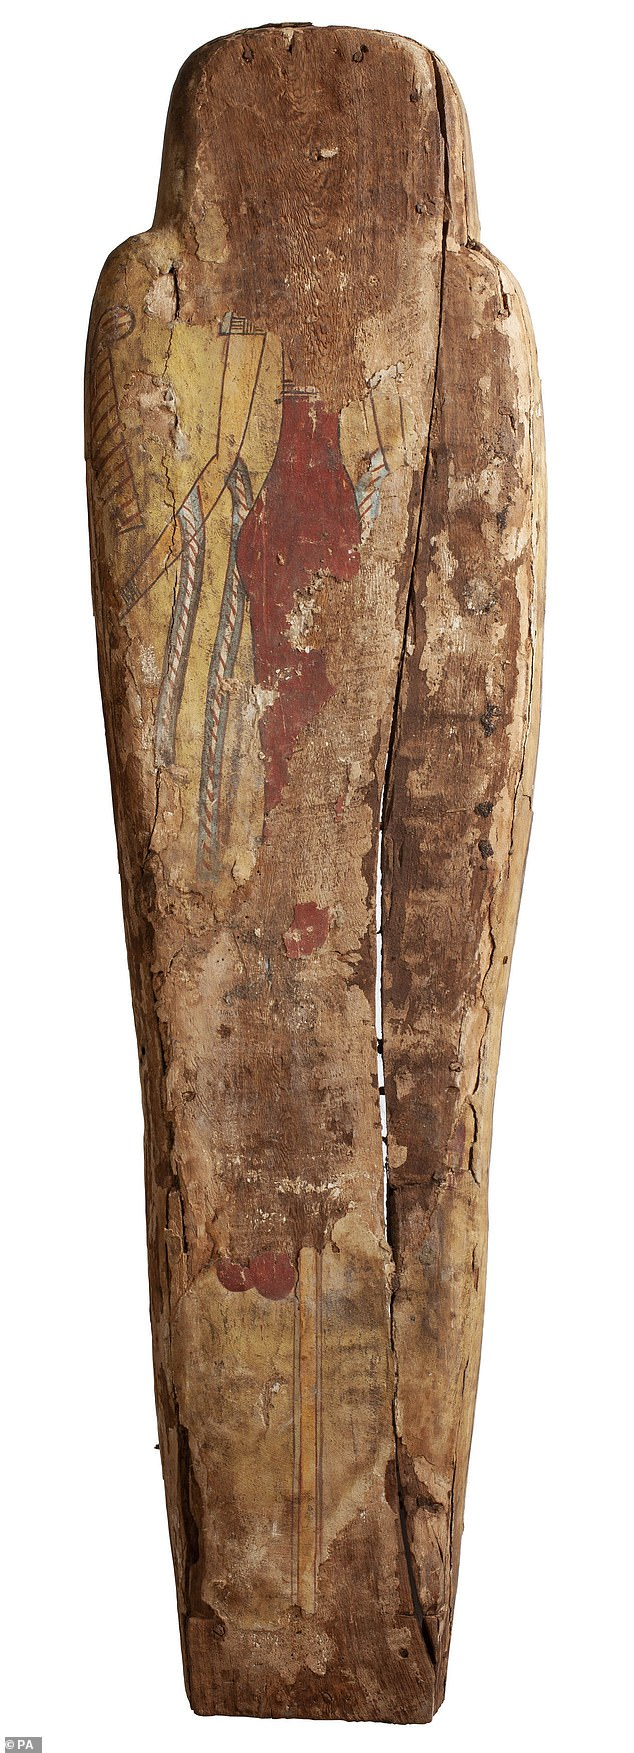 The underside of the coffin, which is slightly less well preserved, also shows a portrait of Amentet